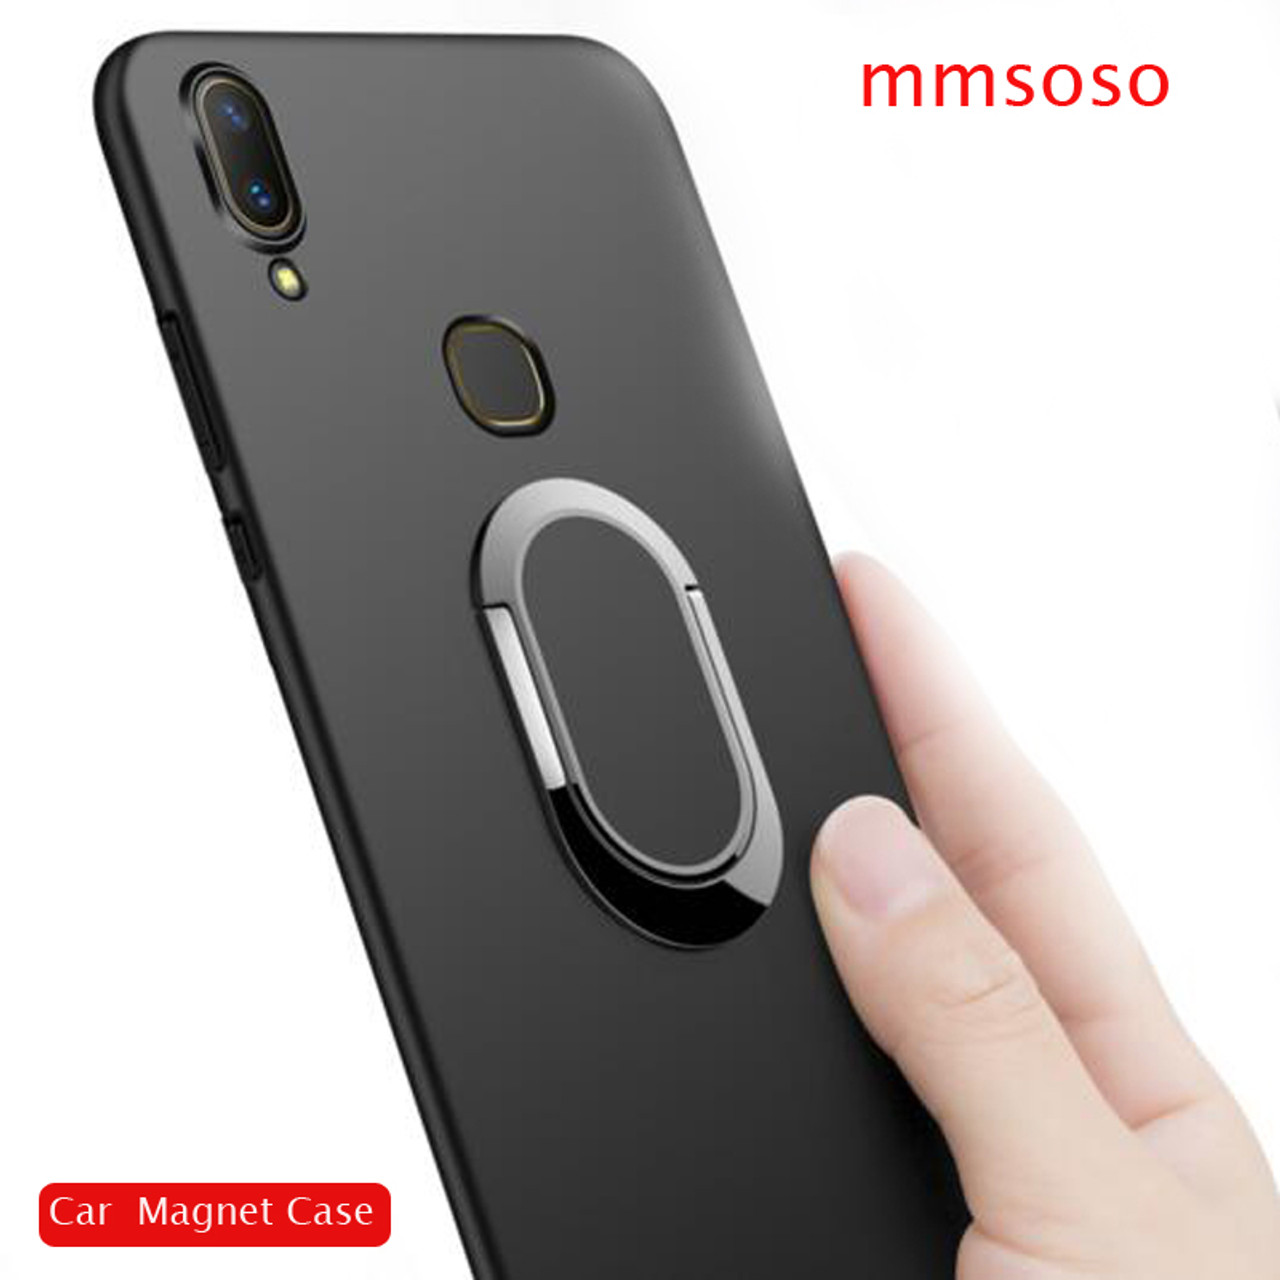 hot sales c4b0d 9a24b Case For Vivo V9 / Vivo Y85 Case 360 Protection Soft Silicone Car Holder  Magnetic Phone Cases For Vivo V9 / Vivo Y85 Cover